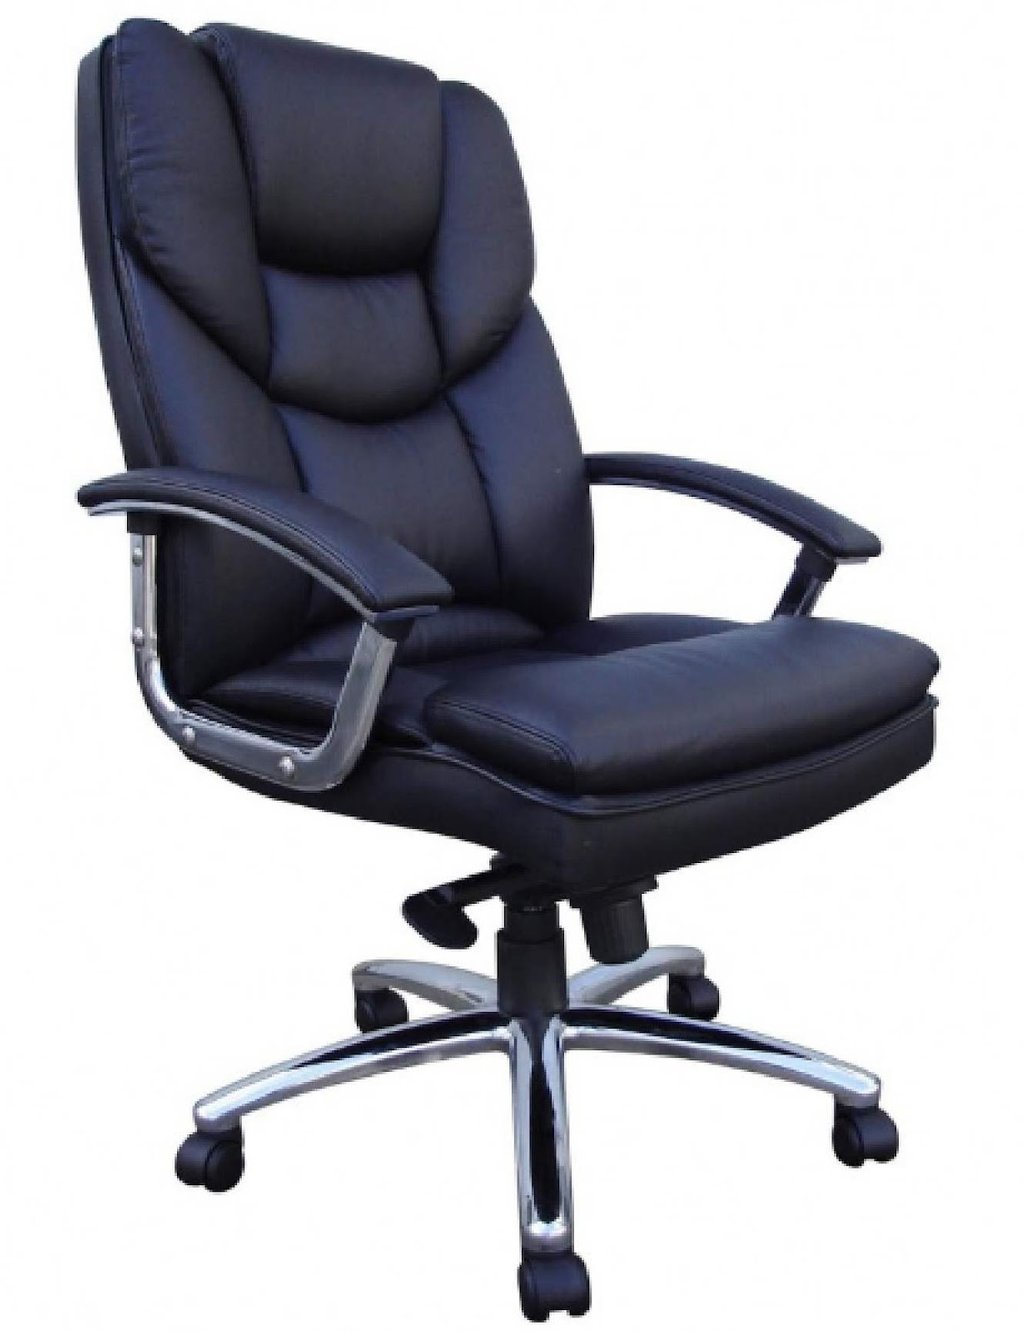 Comfortable Office Chair Designs Interior Design Rolling Office Chairs Covers